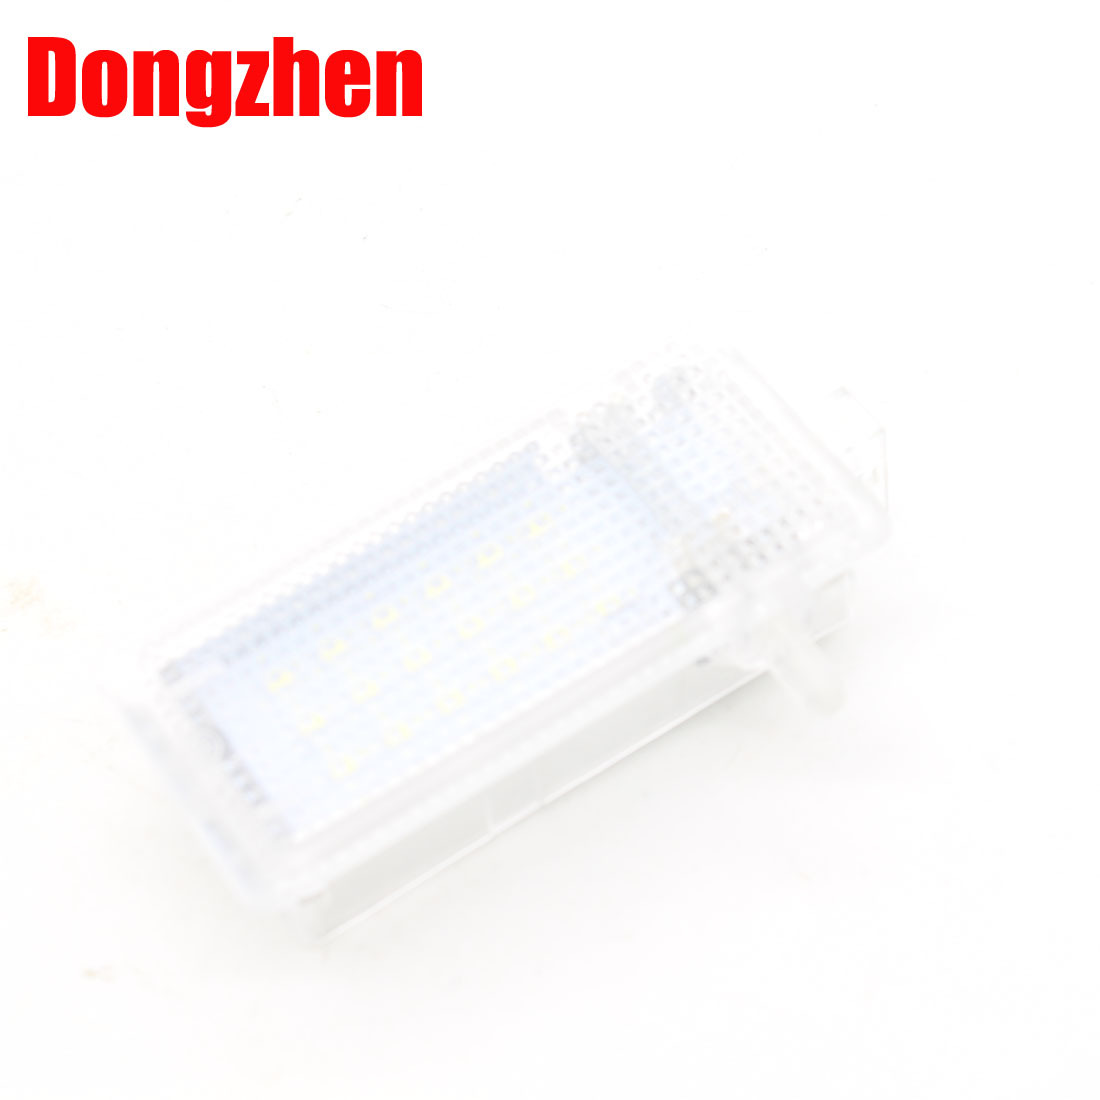 Dongzhen Canbus Led Glove Box light 12V led interior lamp Fit For BMW E46 E53 X5 Mini glove box lamp 1pcs<br><br>Aliexpress